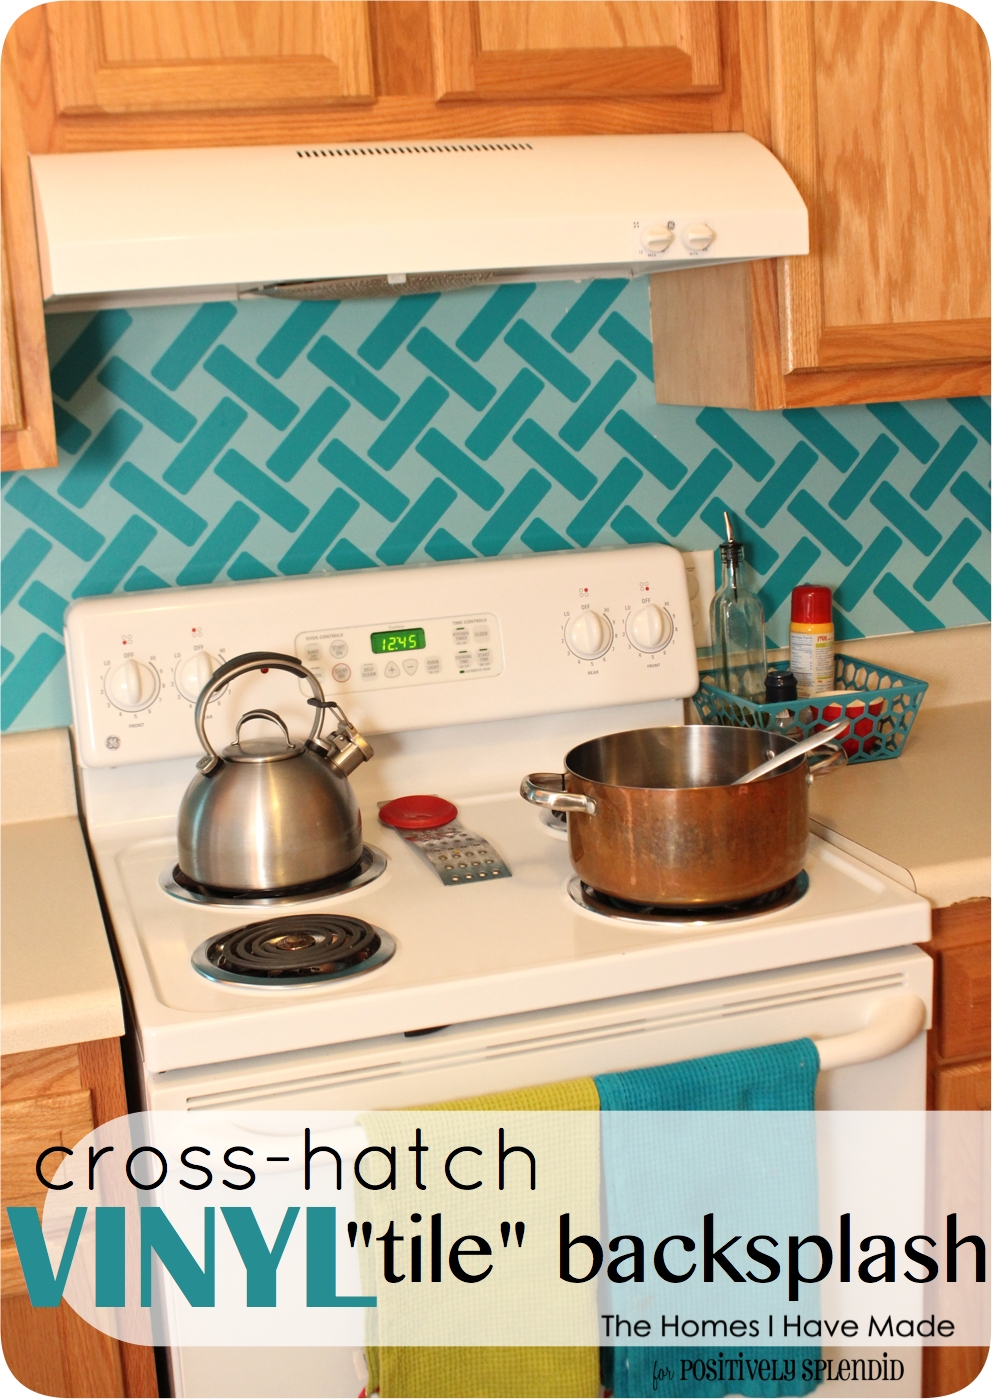 Cross Hatch Vinyl Tile Backsplash The Homes I Have Made